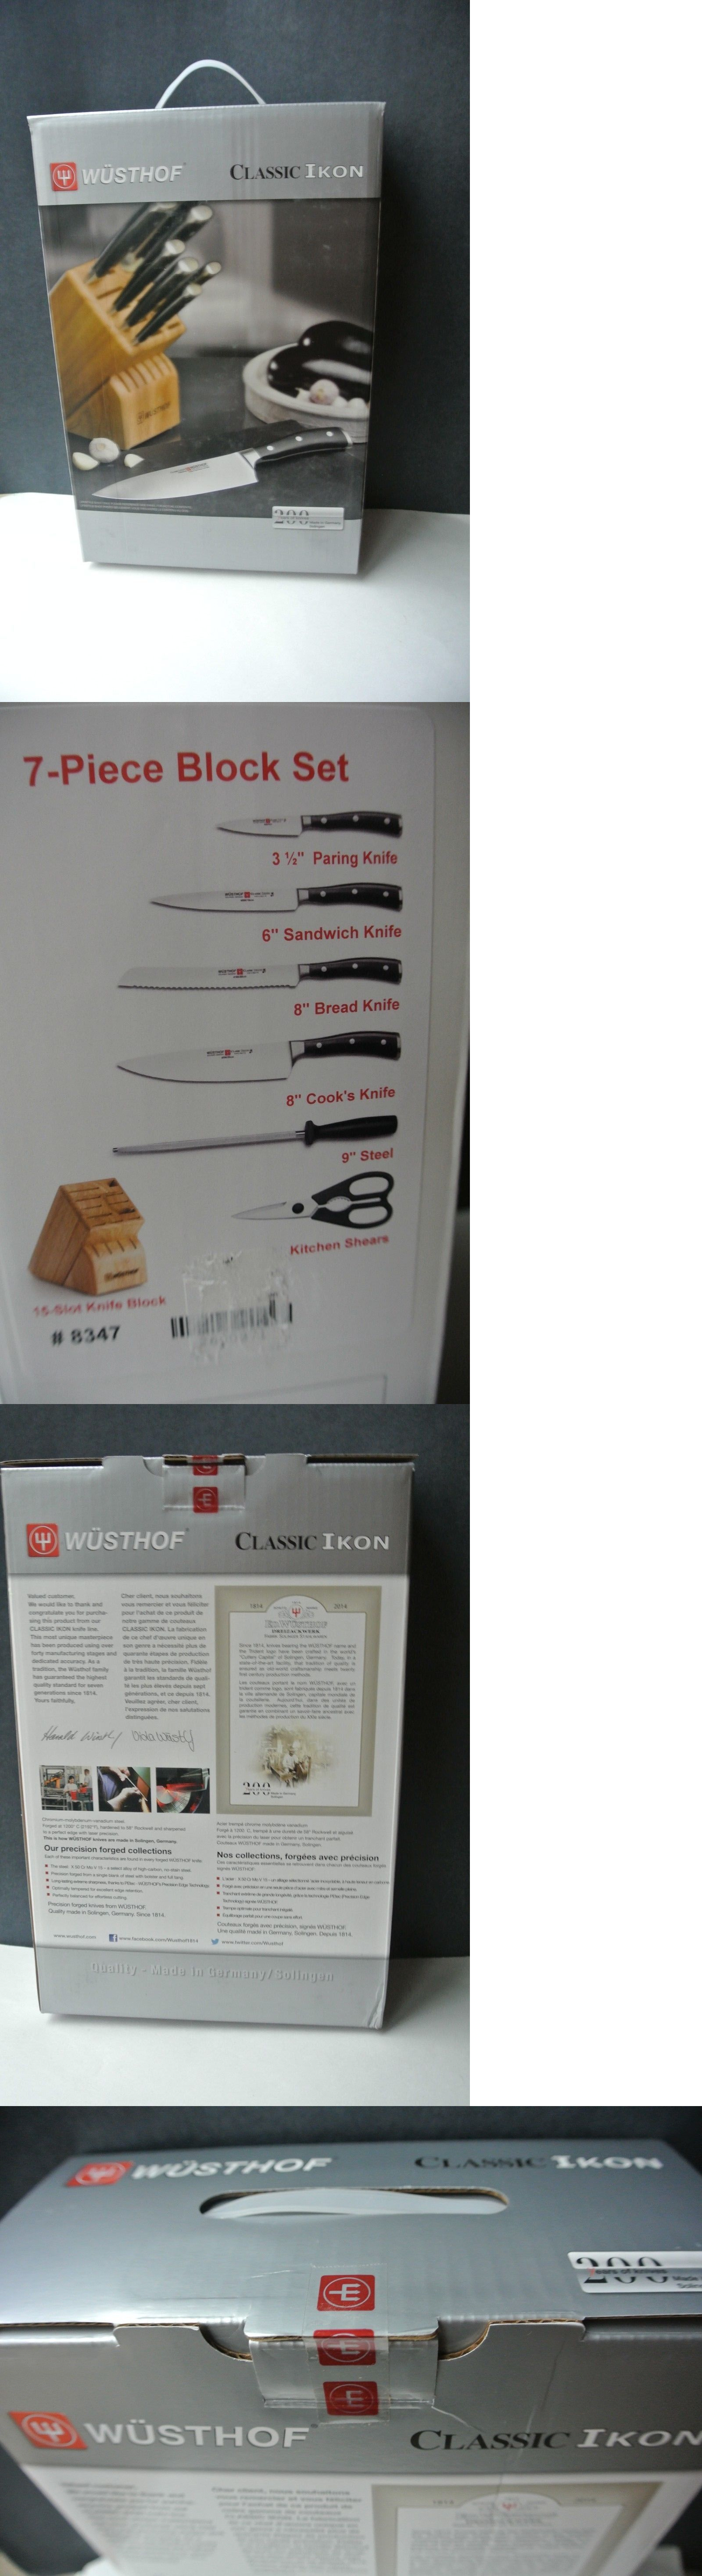 kitchen and steak knives 177005 new in box wusthof classic ikon 7 kitchen and steak knives 177005 new in box wusthof classic ikon 7 piece knife block